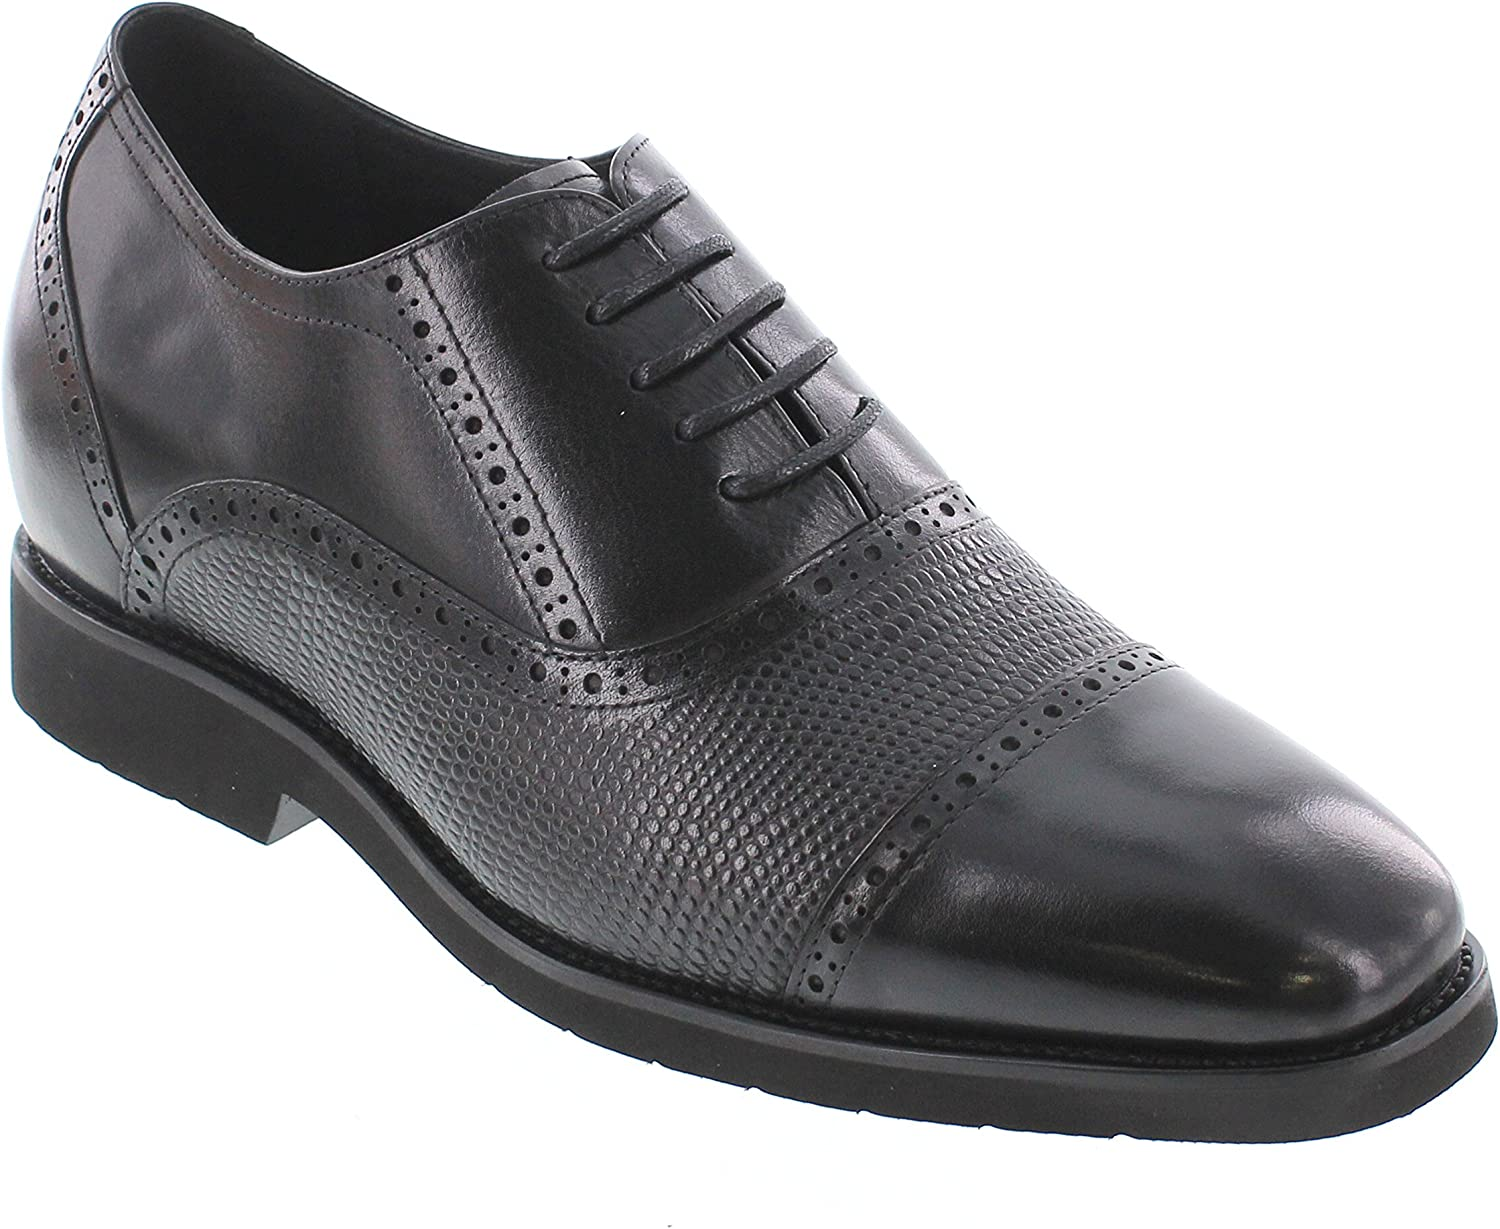 CALDEN - K320021-2.8 Inches Taller - Height Increasing Elevator shoes-Black Leather Cap-Toe